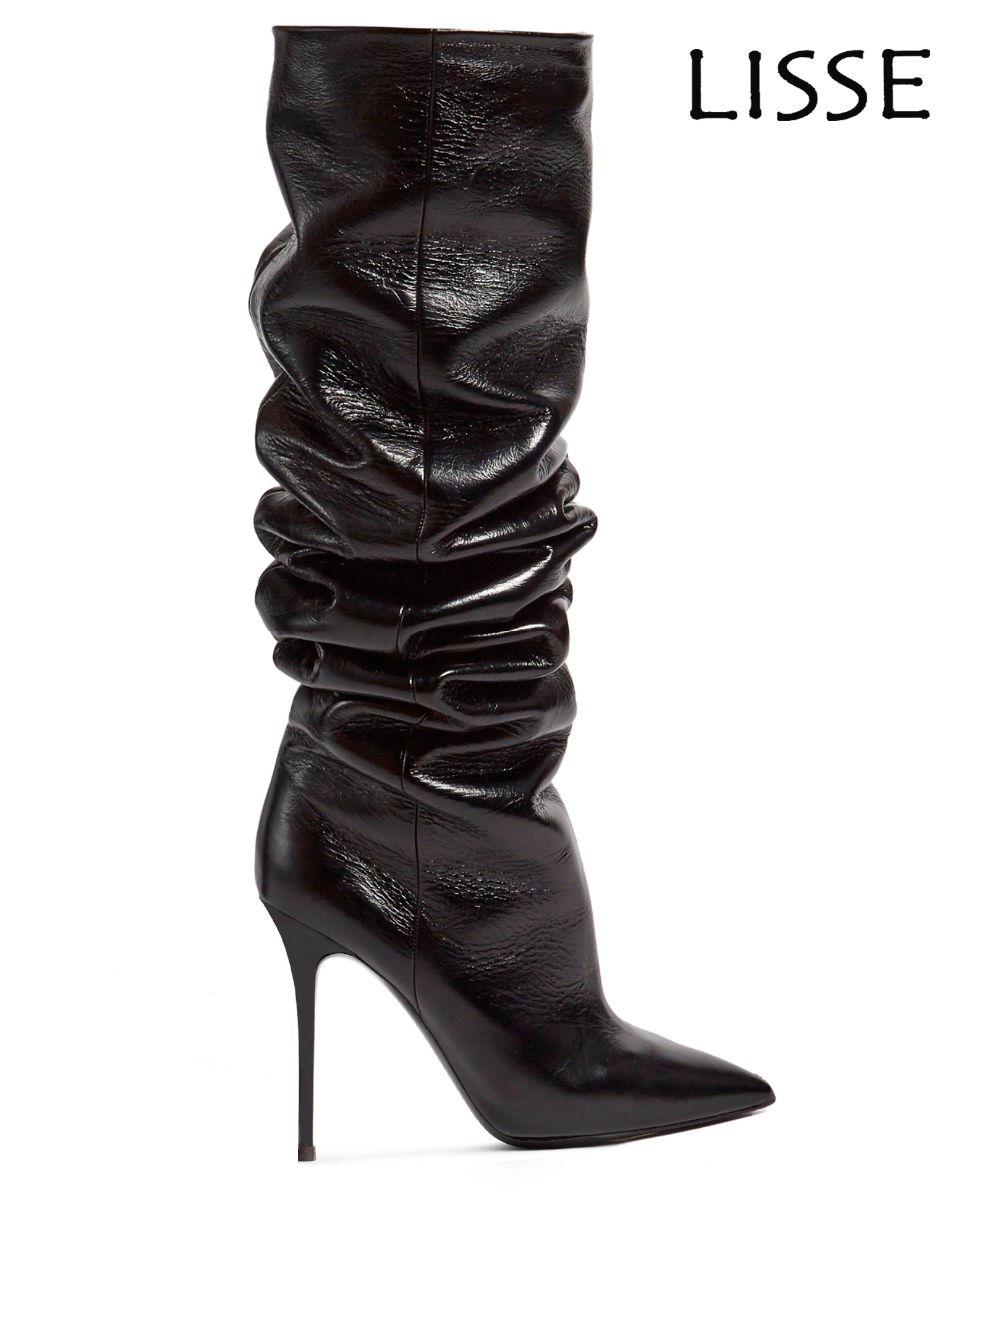 2018 New Fashion Women High Heel Pointed Toe Slouchy Knee High Boots Winter Dress Knee Boots 2016 new fashion winter knee high boots high quality personality knee high boots comfortable genuine leather boots